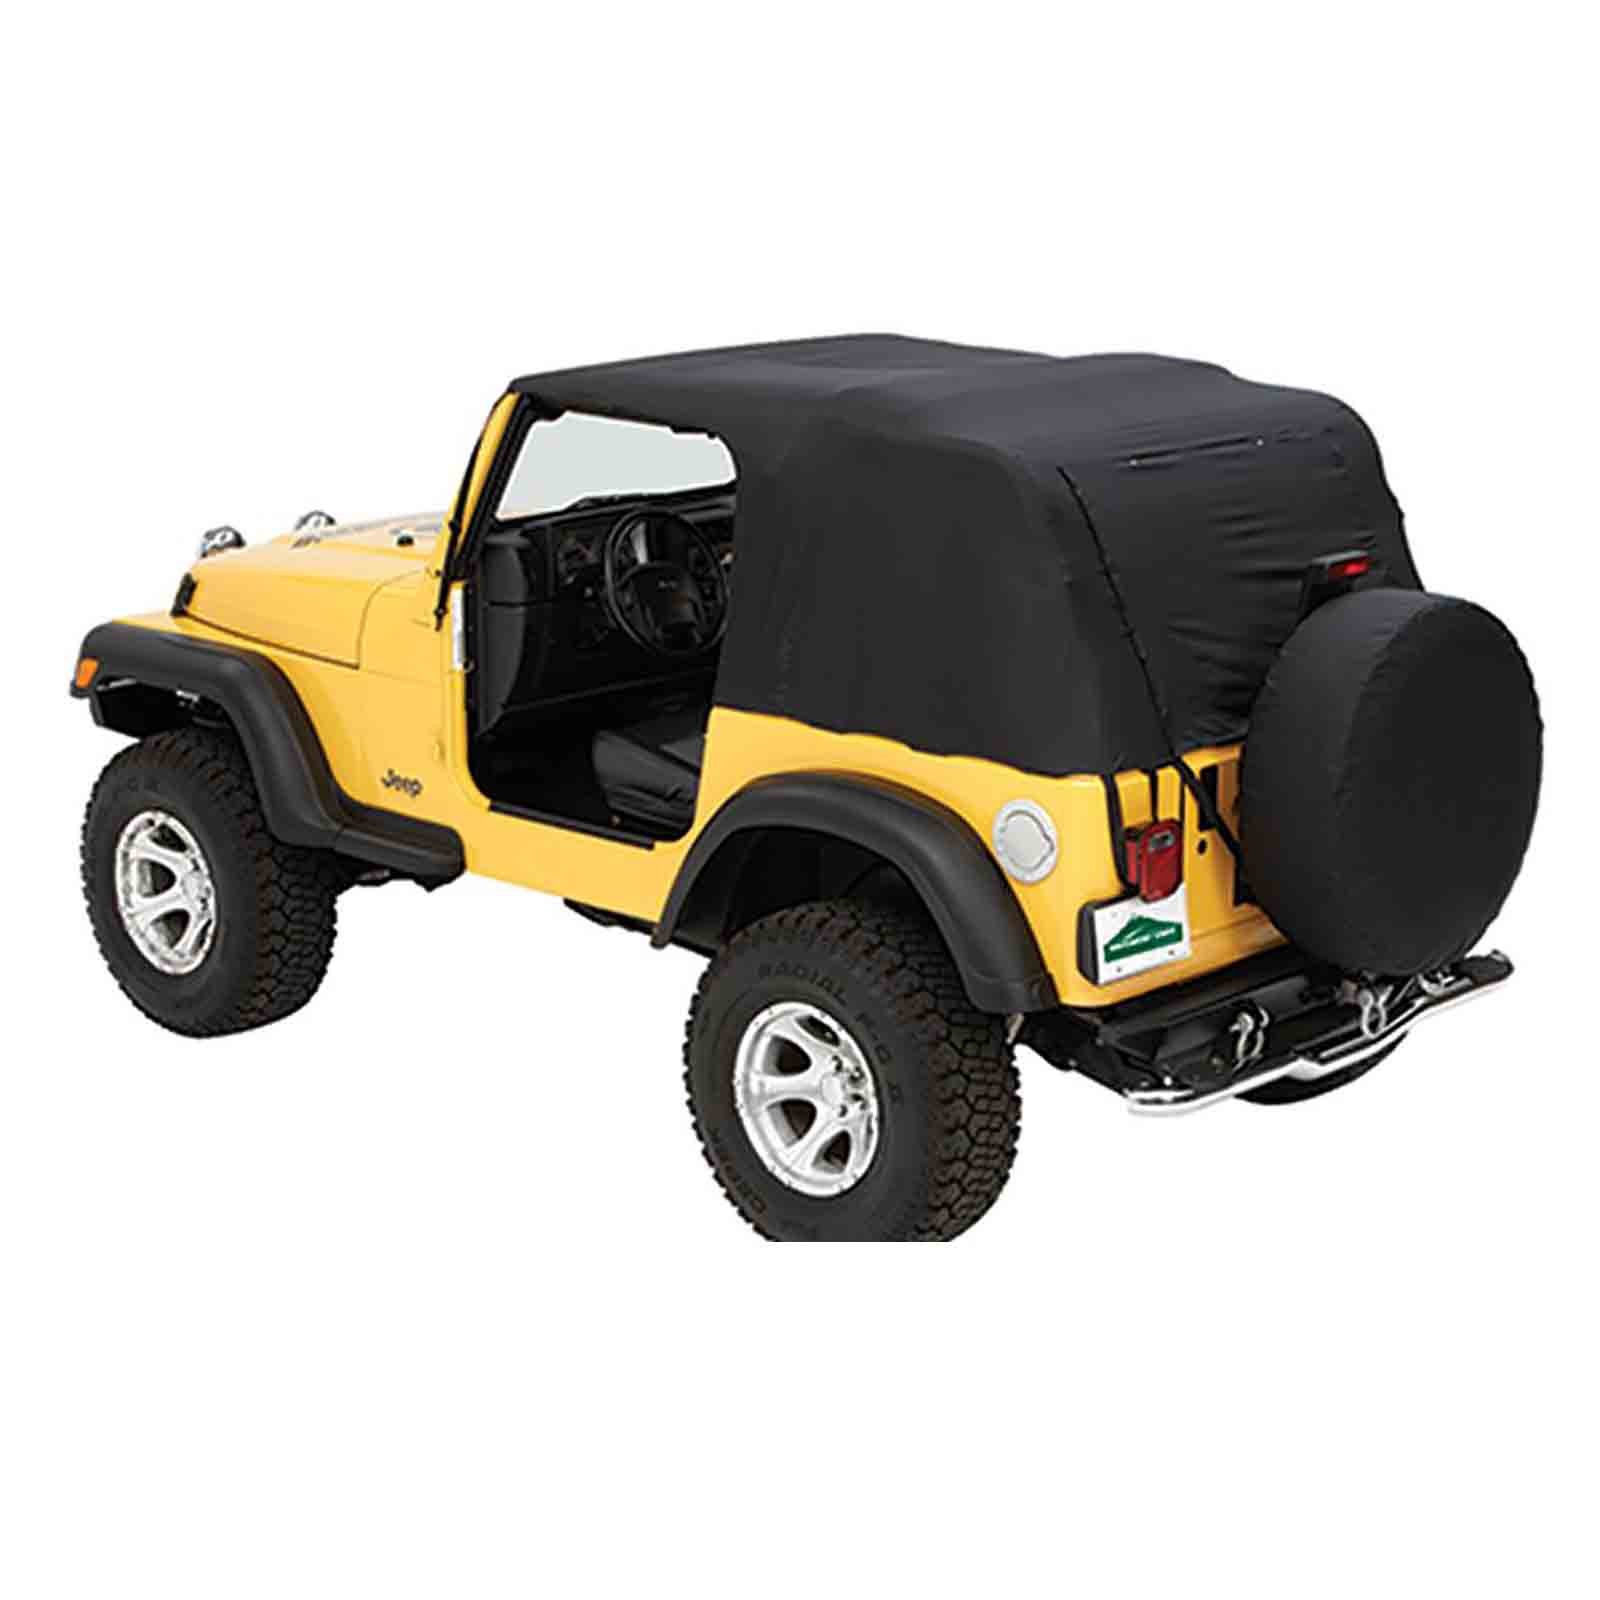 Capottina soft top di emergenza jeep cj 76 86 wrangler yj 87 91  ricambi jeep